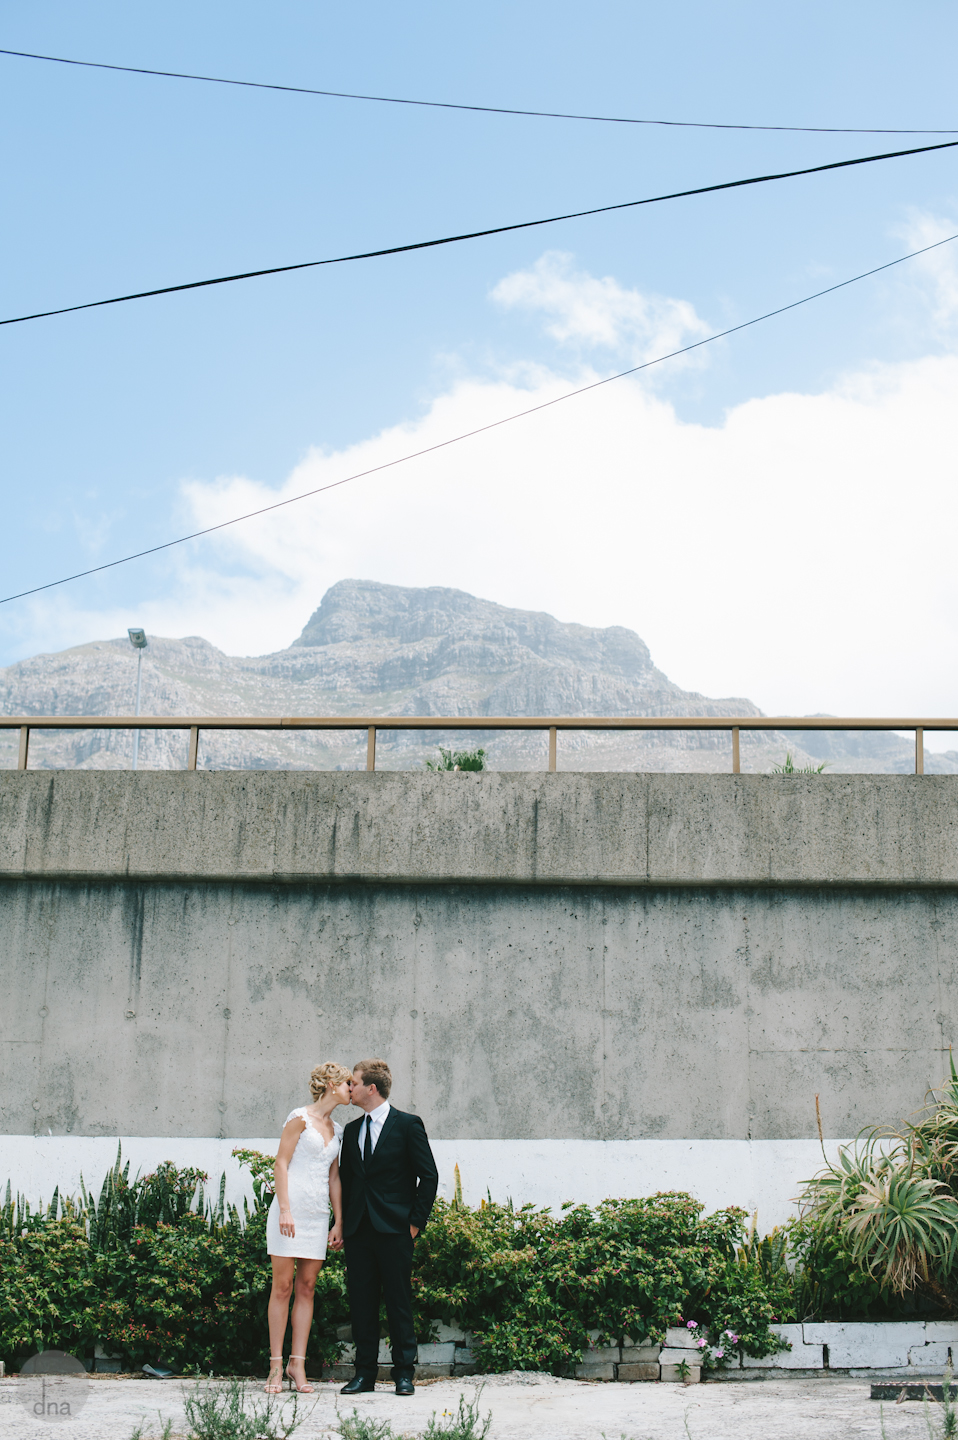 couple shoot Chrisli and Matt wedding Greek Orthodox Church Woodstock Cape Town South Africa shot by dna photographers 78.jpg